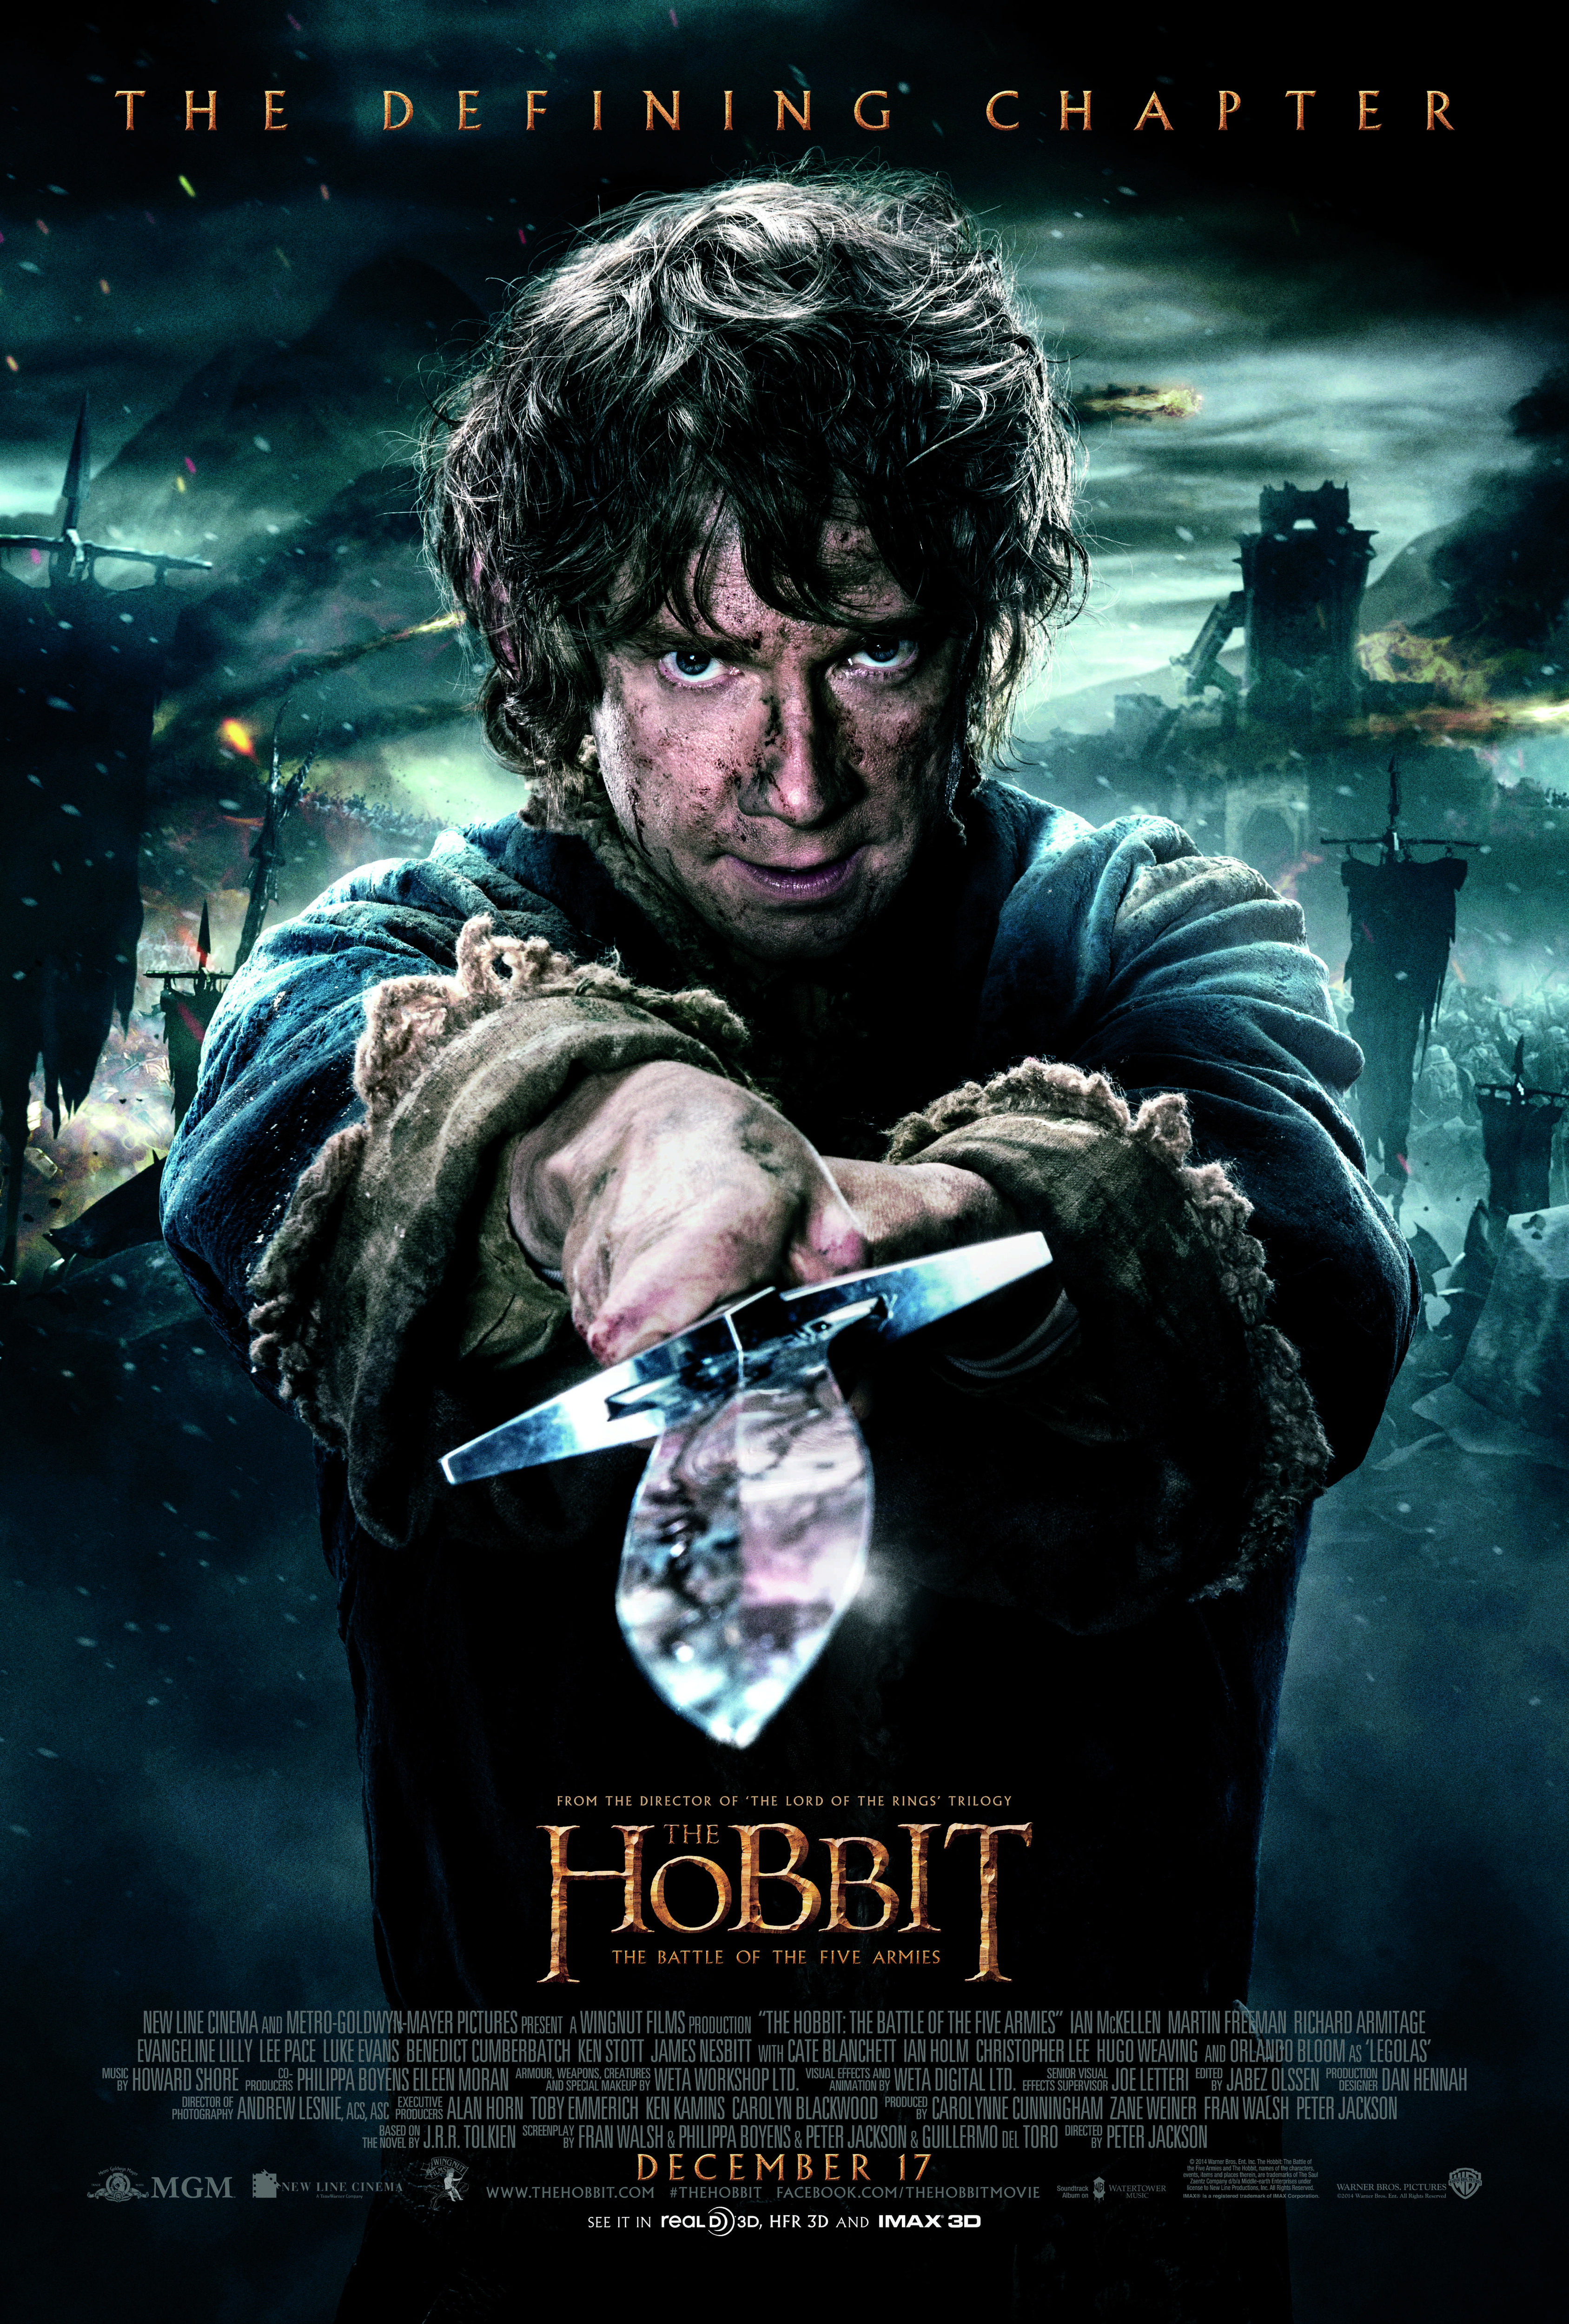 Mediocre 'The Battle of the Five Armies' Closes 'The Hobbit' Trilogy